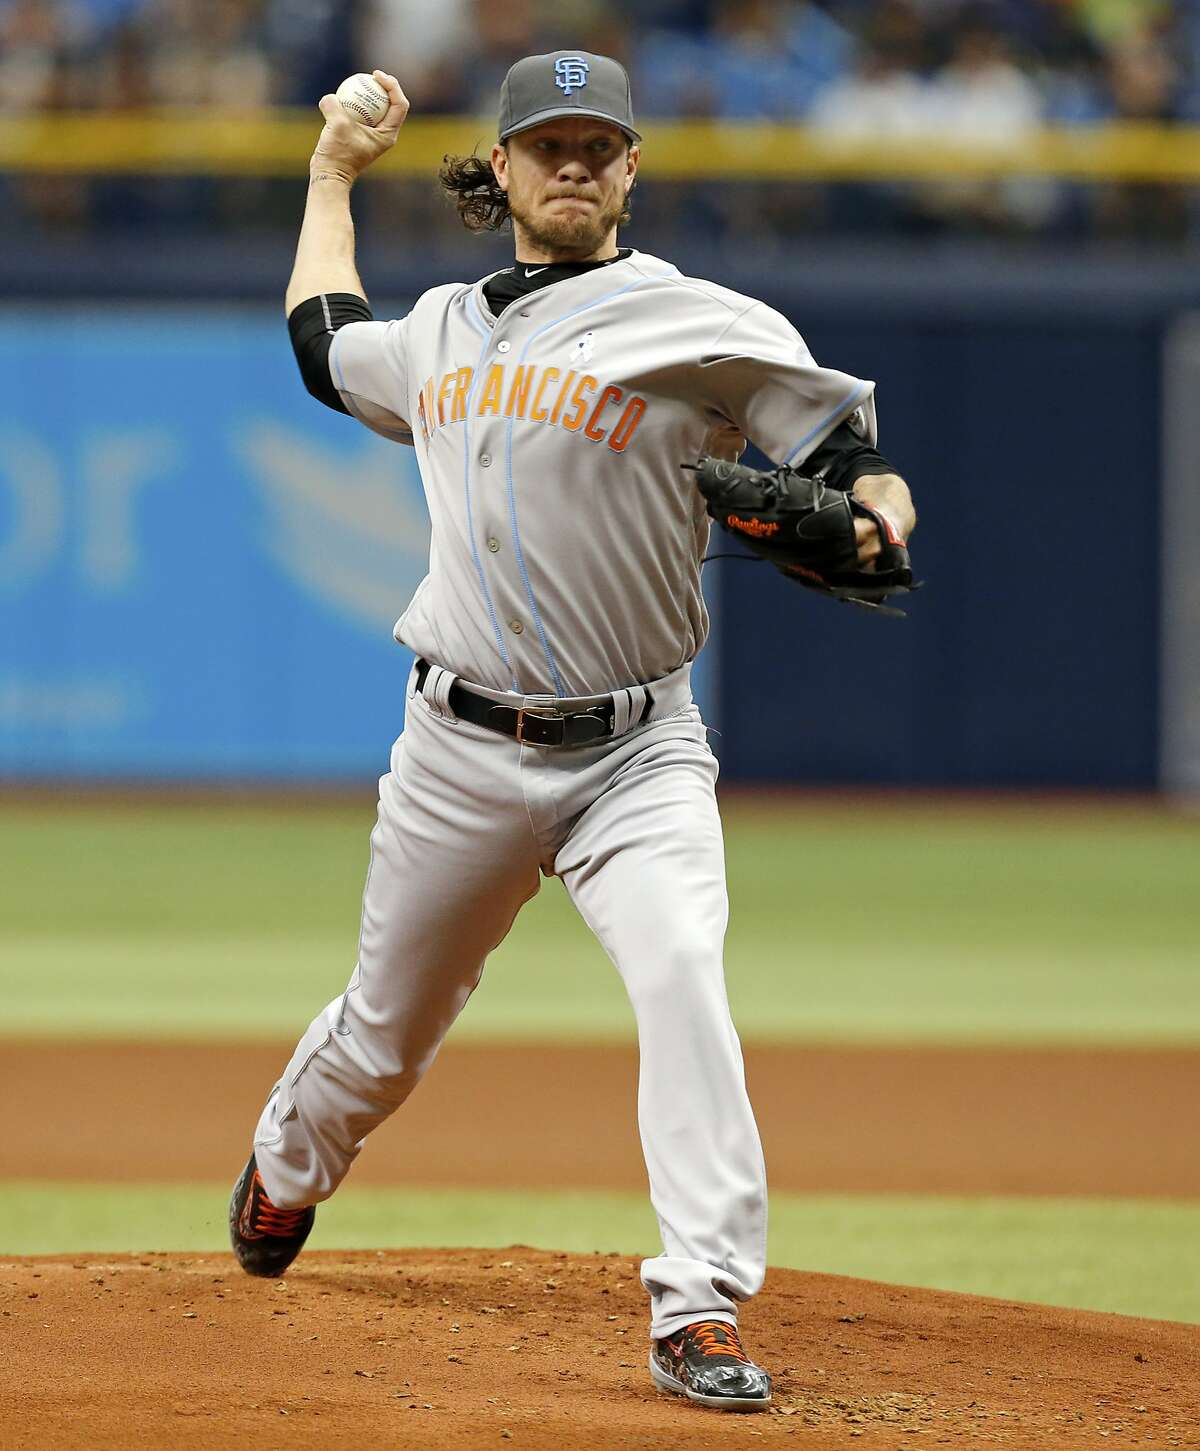 San Francisco Giants starting pitcher Jake Peavy throws during the first inning of a baseball game against the Tampa Bay Rays Saturday, June 19, 2016, in St. Petersburg, Fla. (AP Photo/Mike Carlson)